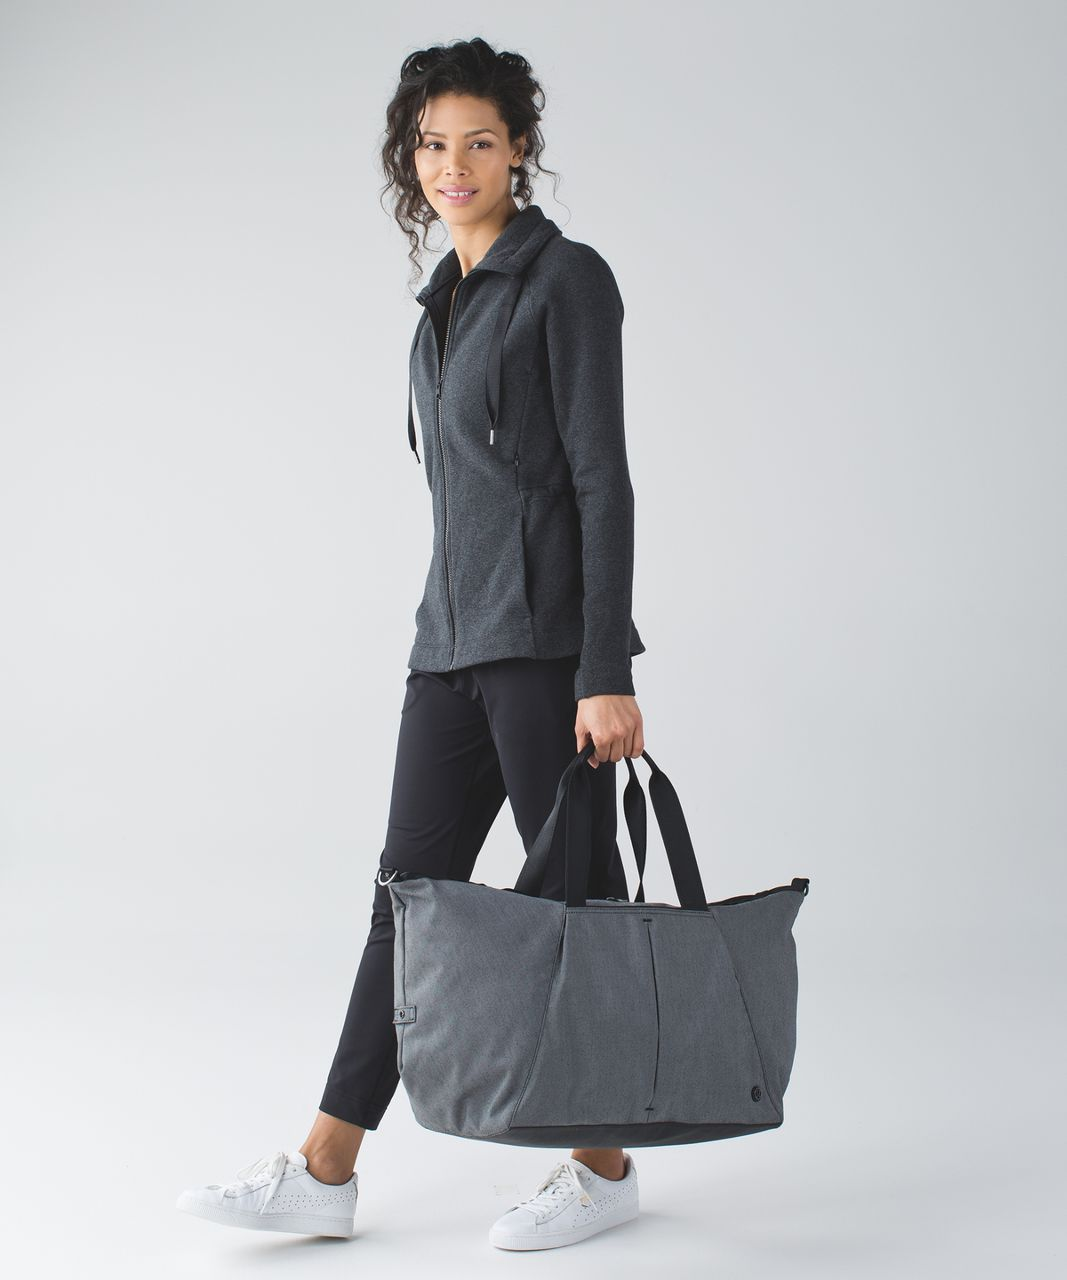 Lululemon Break Free Weekender - Black / White / Black